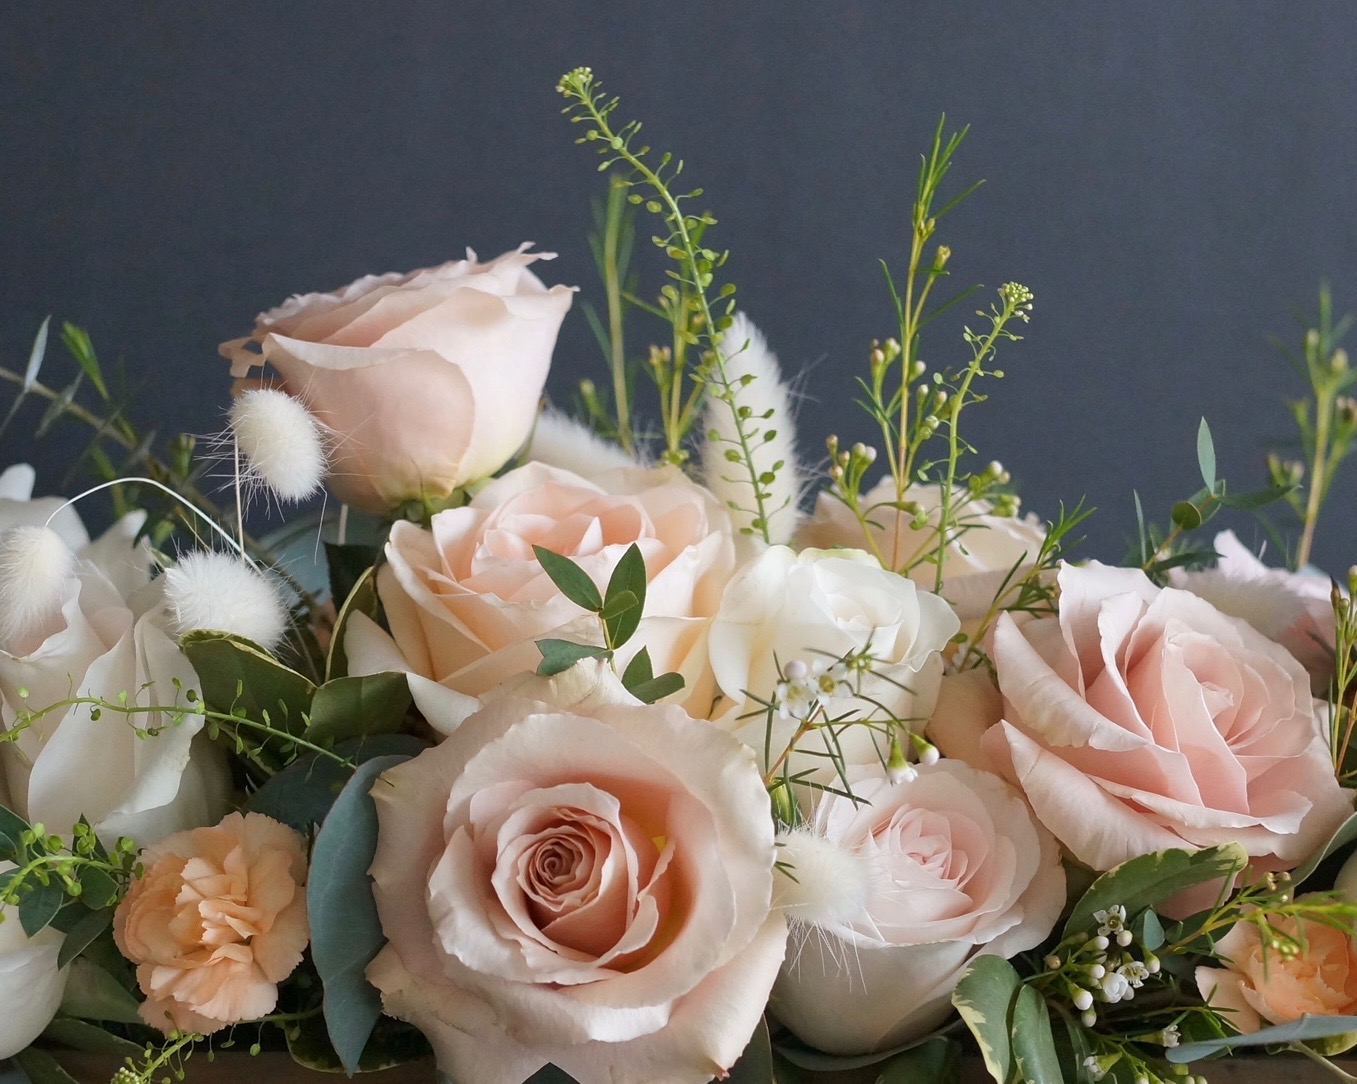 Blush colored blooms are still a hot commodity this year - be prepared for increased pricing due to increased demand.